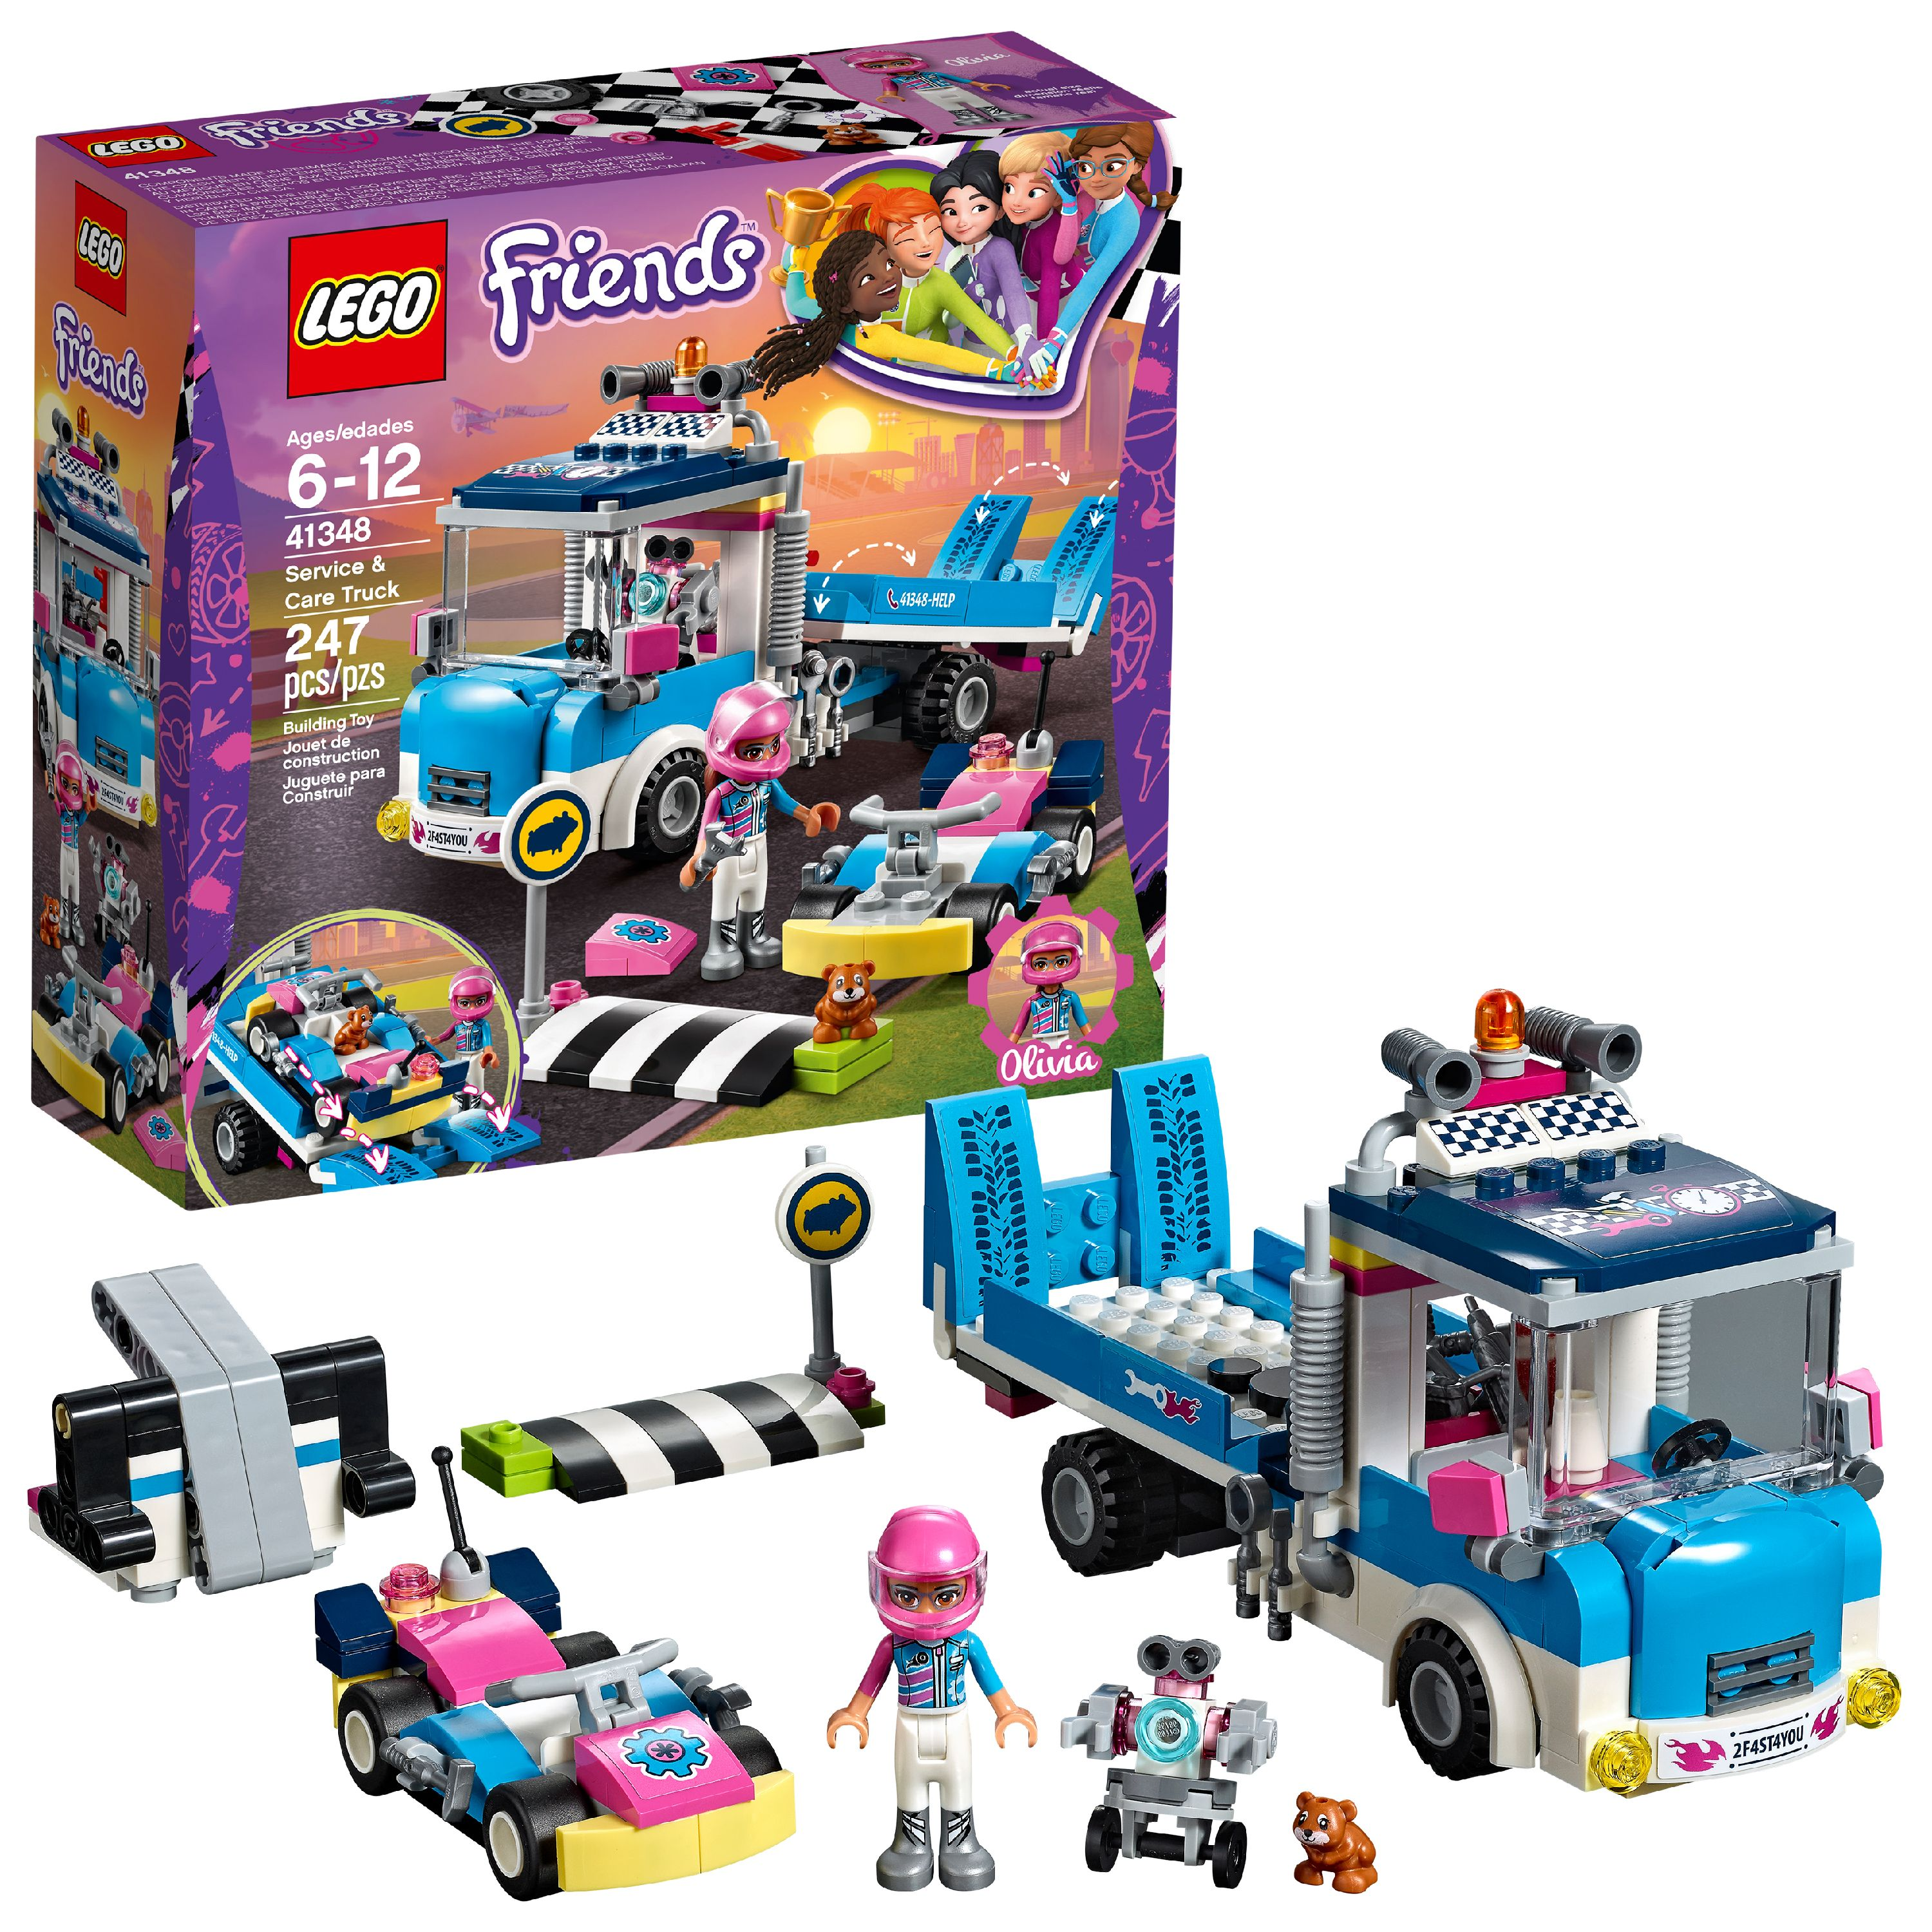 LEGO Friends Service & Care Truck 41348 (247 Pieces)